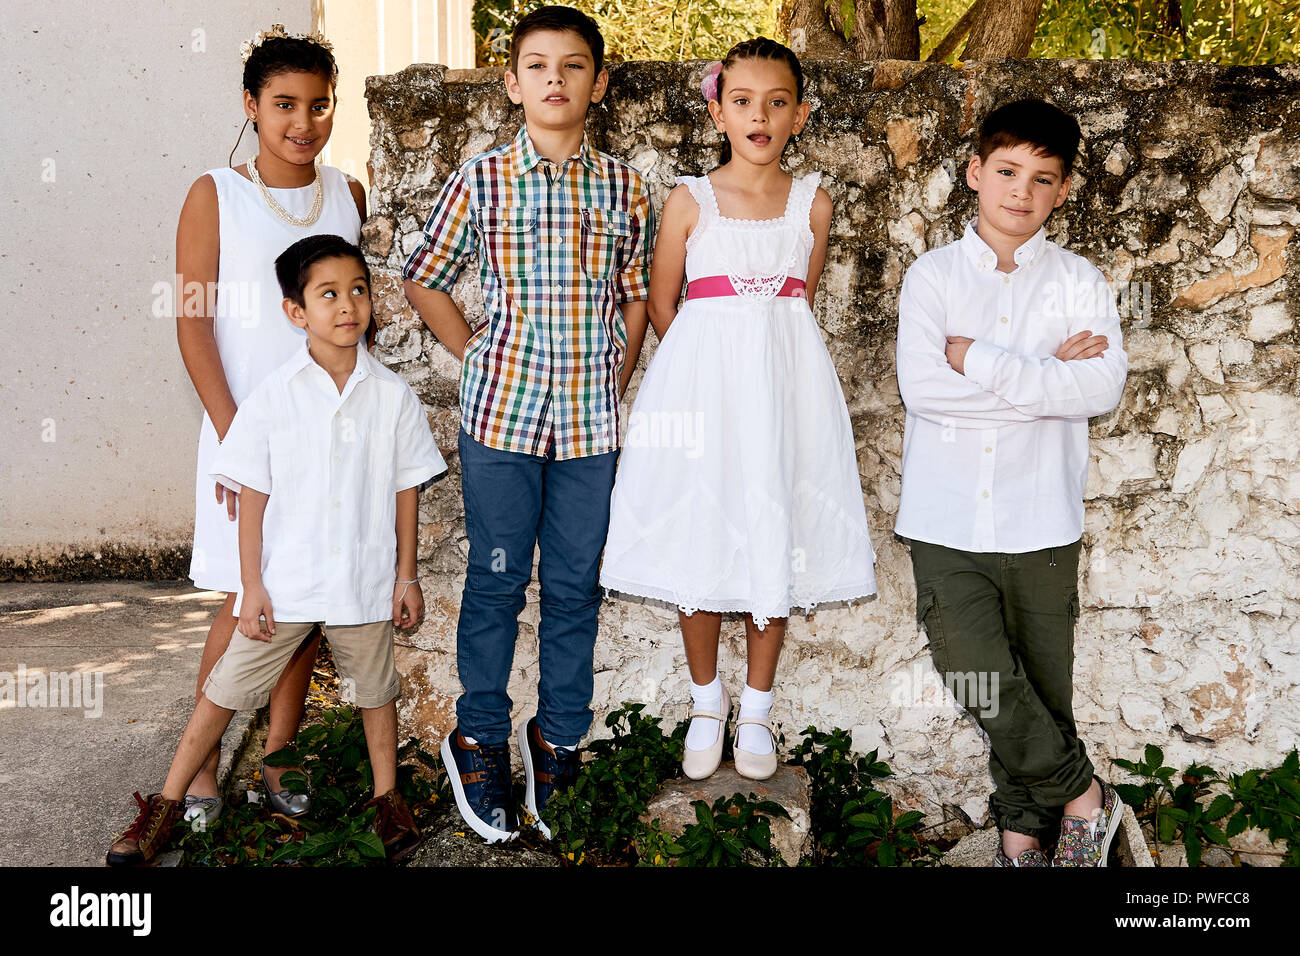 MERIDA, YUC/MEXICO - NOV 18, 2017: Portrait of mexican children (siblings and cousins) outside church, after attending the baptism of baby cousins - Stock Image